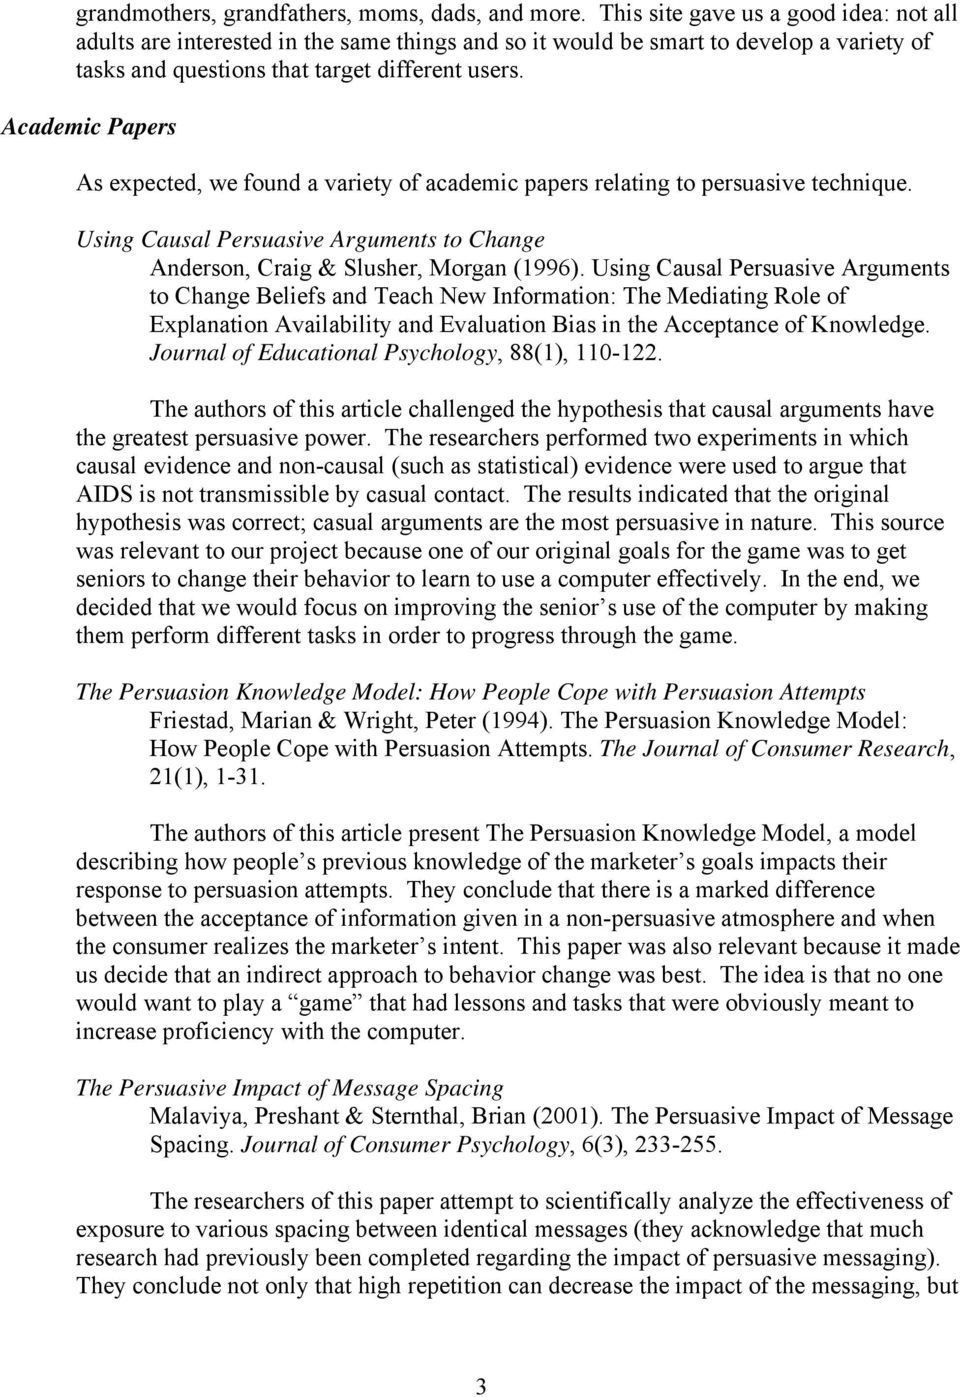 Academic Papers As expected, we found a variety of academic papers relating to persuasive technique. Using Causal Persuasive Arguments to Change Anderson, Craig & Slusher, Morgan (1996).